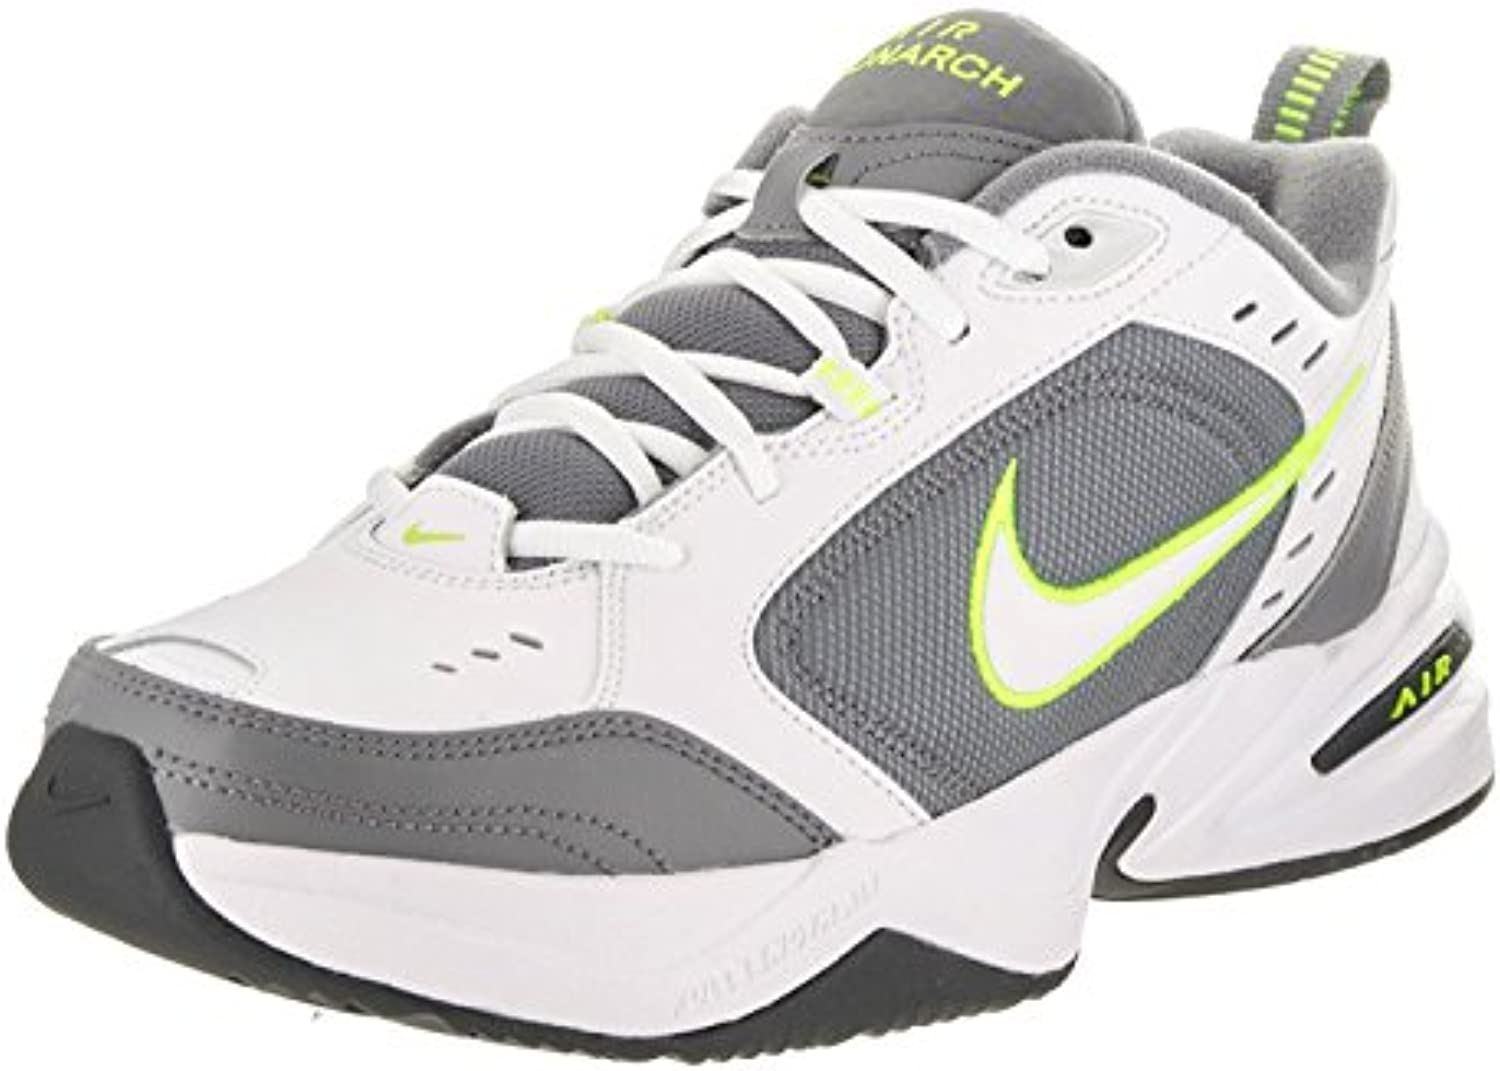 Nike Men'S Air Monarch IV Training Shoe, White/Cool Grey/Anthracite/Volt, 42.5 D(M) EU/8 D(M) UK